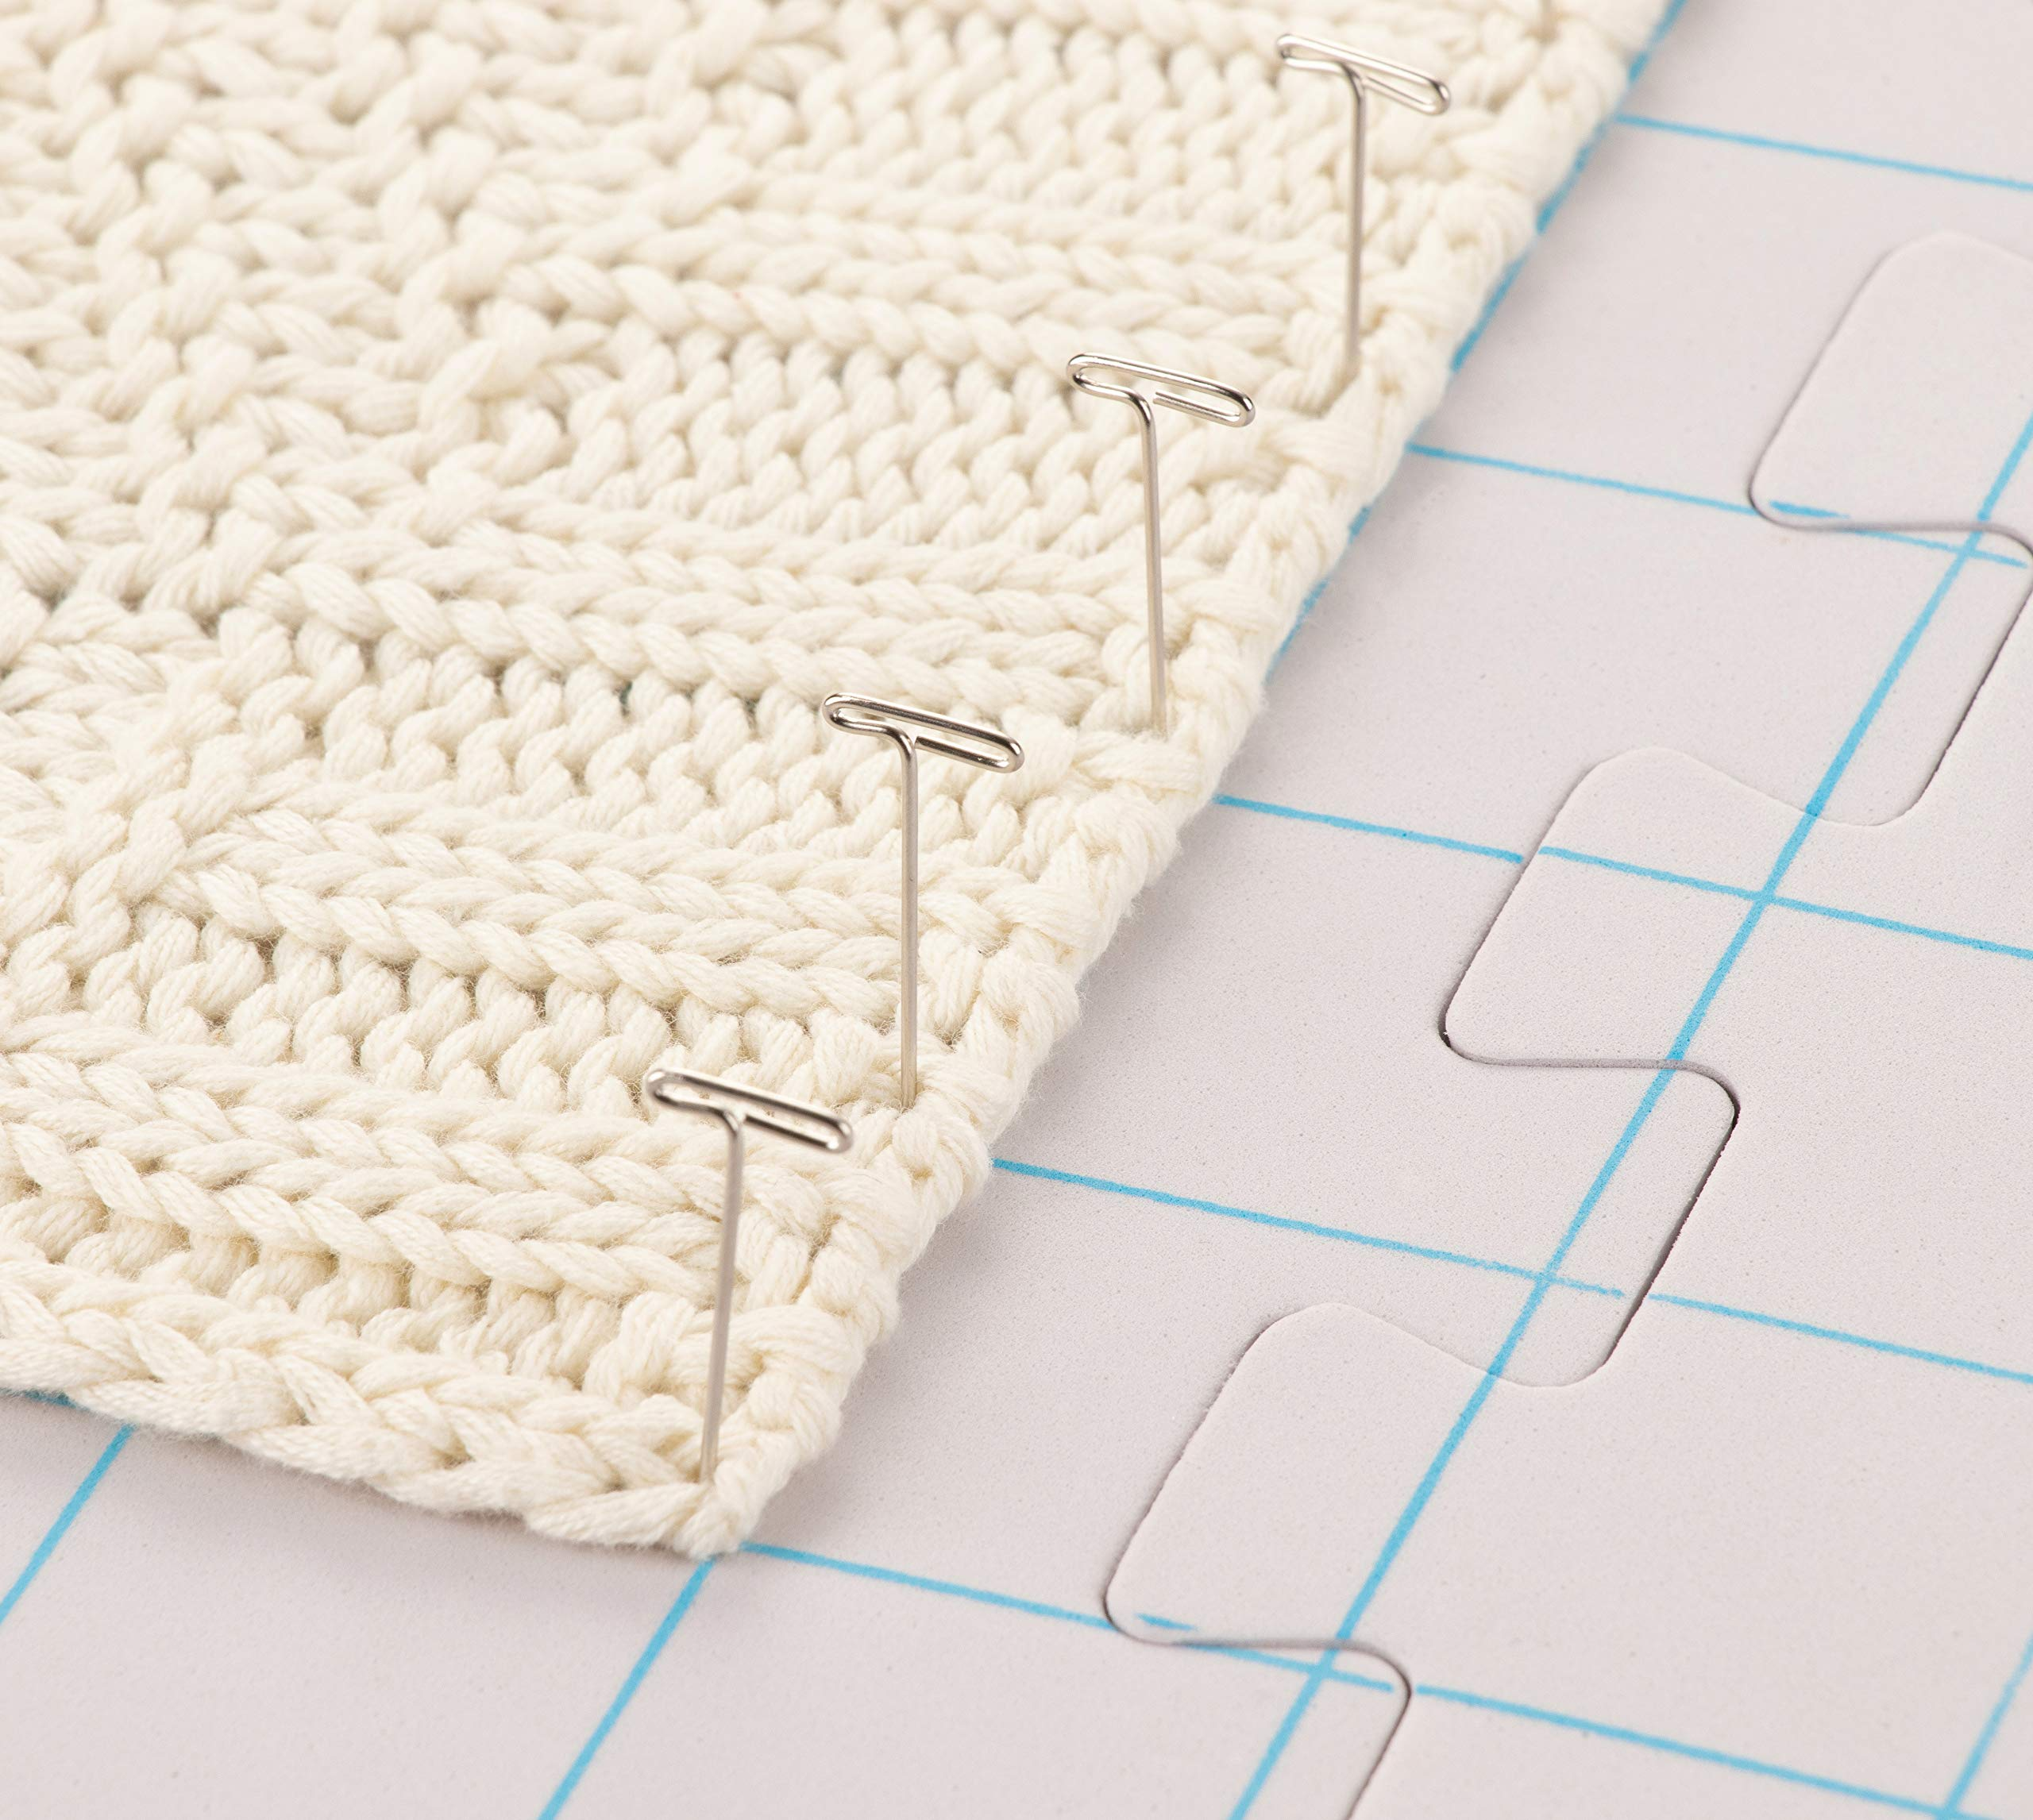 Juvale 9-Pack Thick Blocking Board Mats with 200 T-Pins and Storage Bag for Knitting and Crochet, 12.5 Inches by Juvale (Image #3)